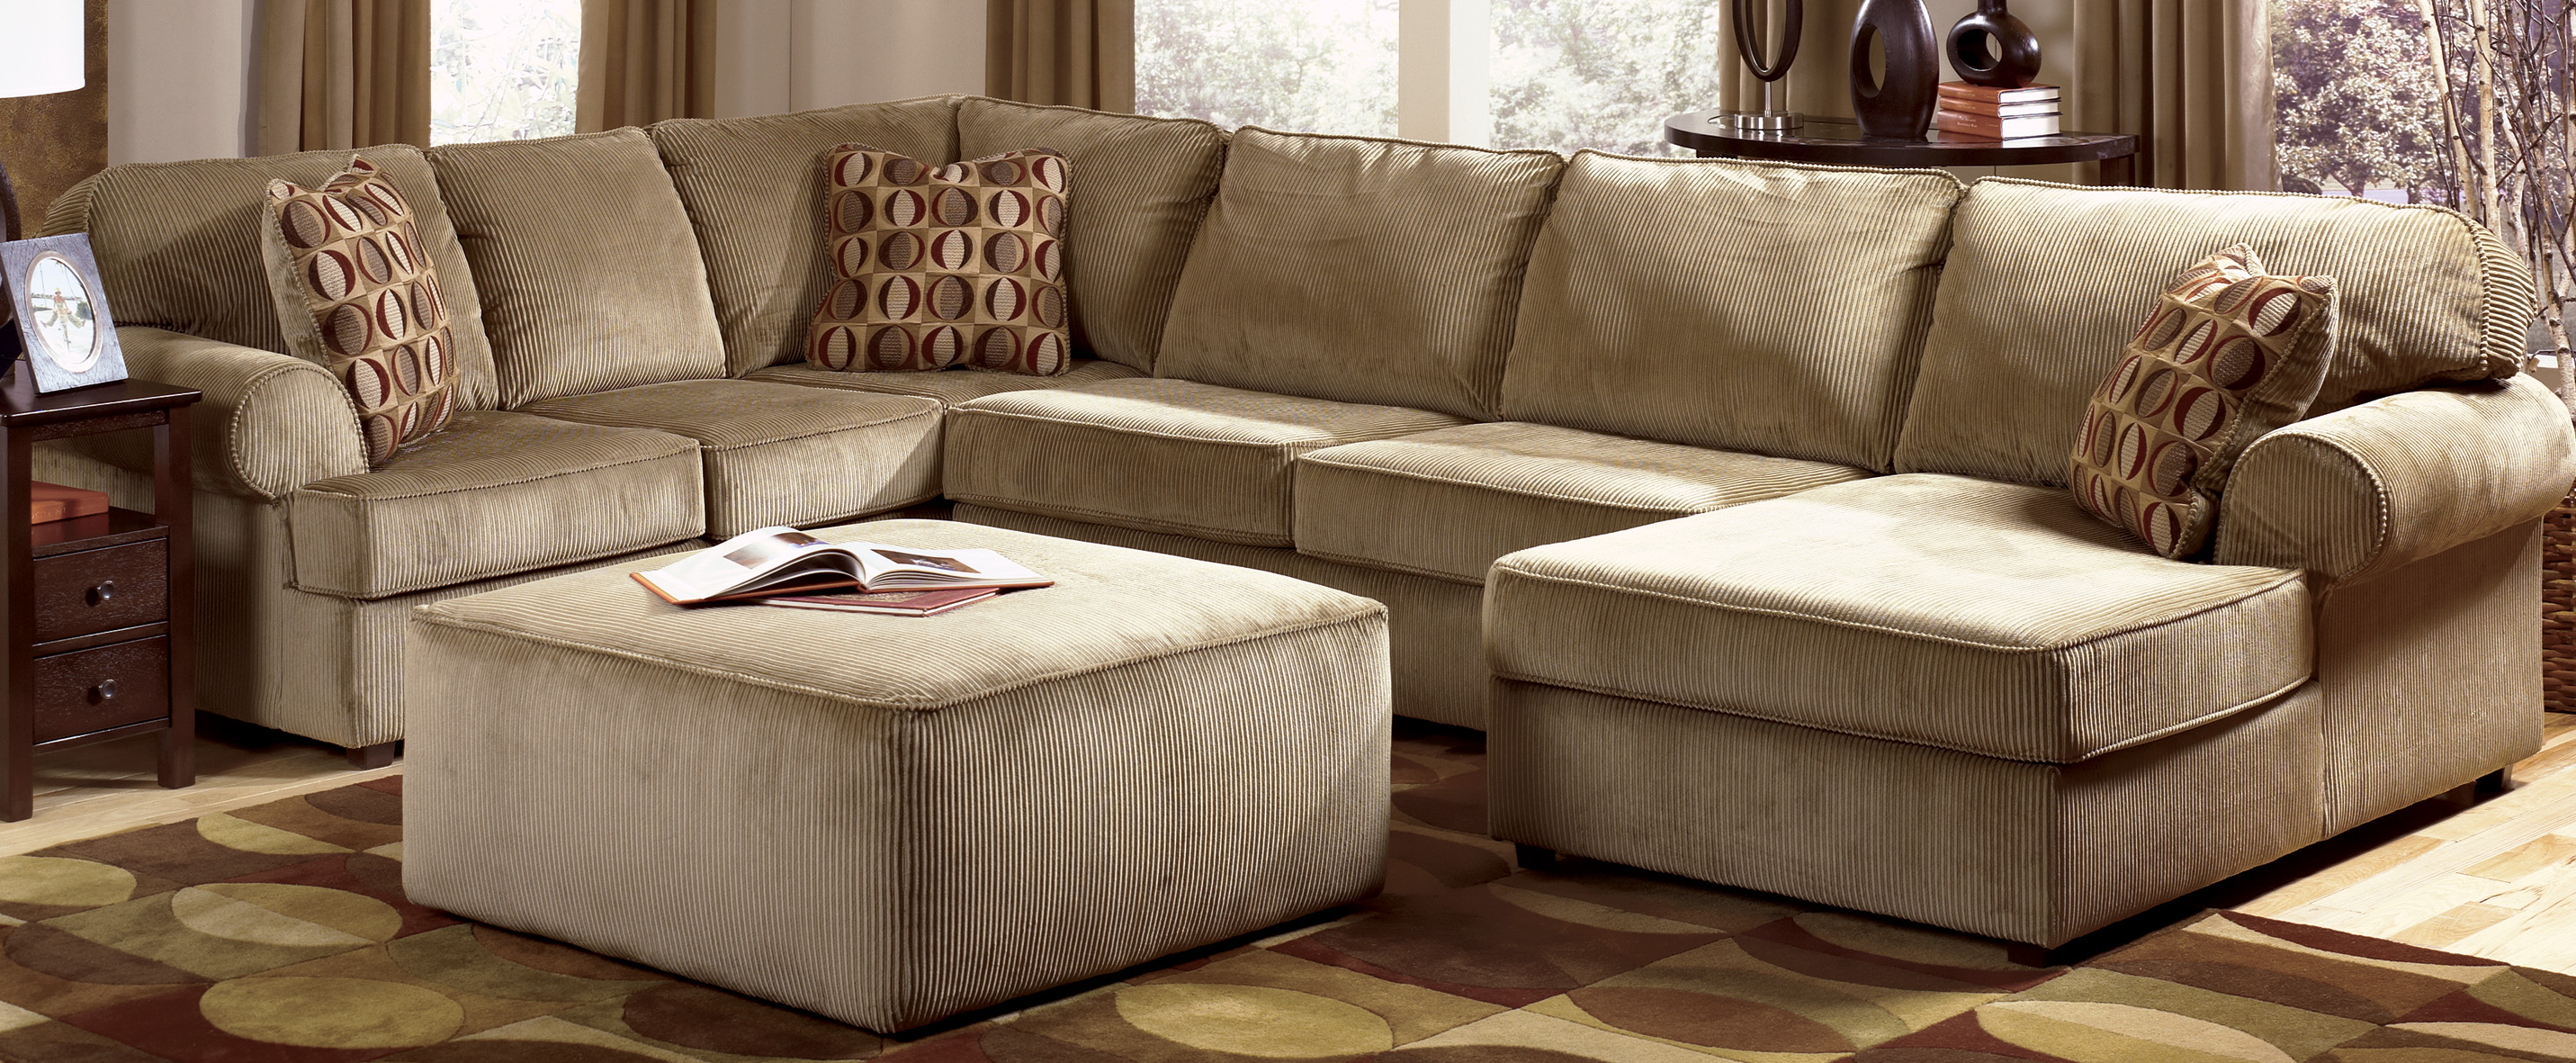 Charming Cheap Sectional Sofas In Cream On Brown Carpet For Living Room  Decor Ideas